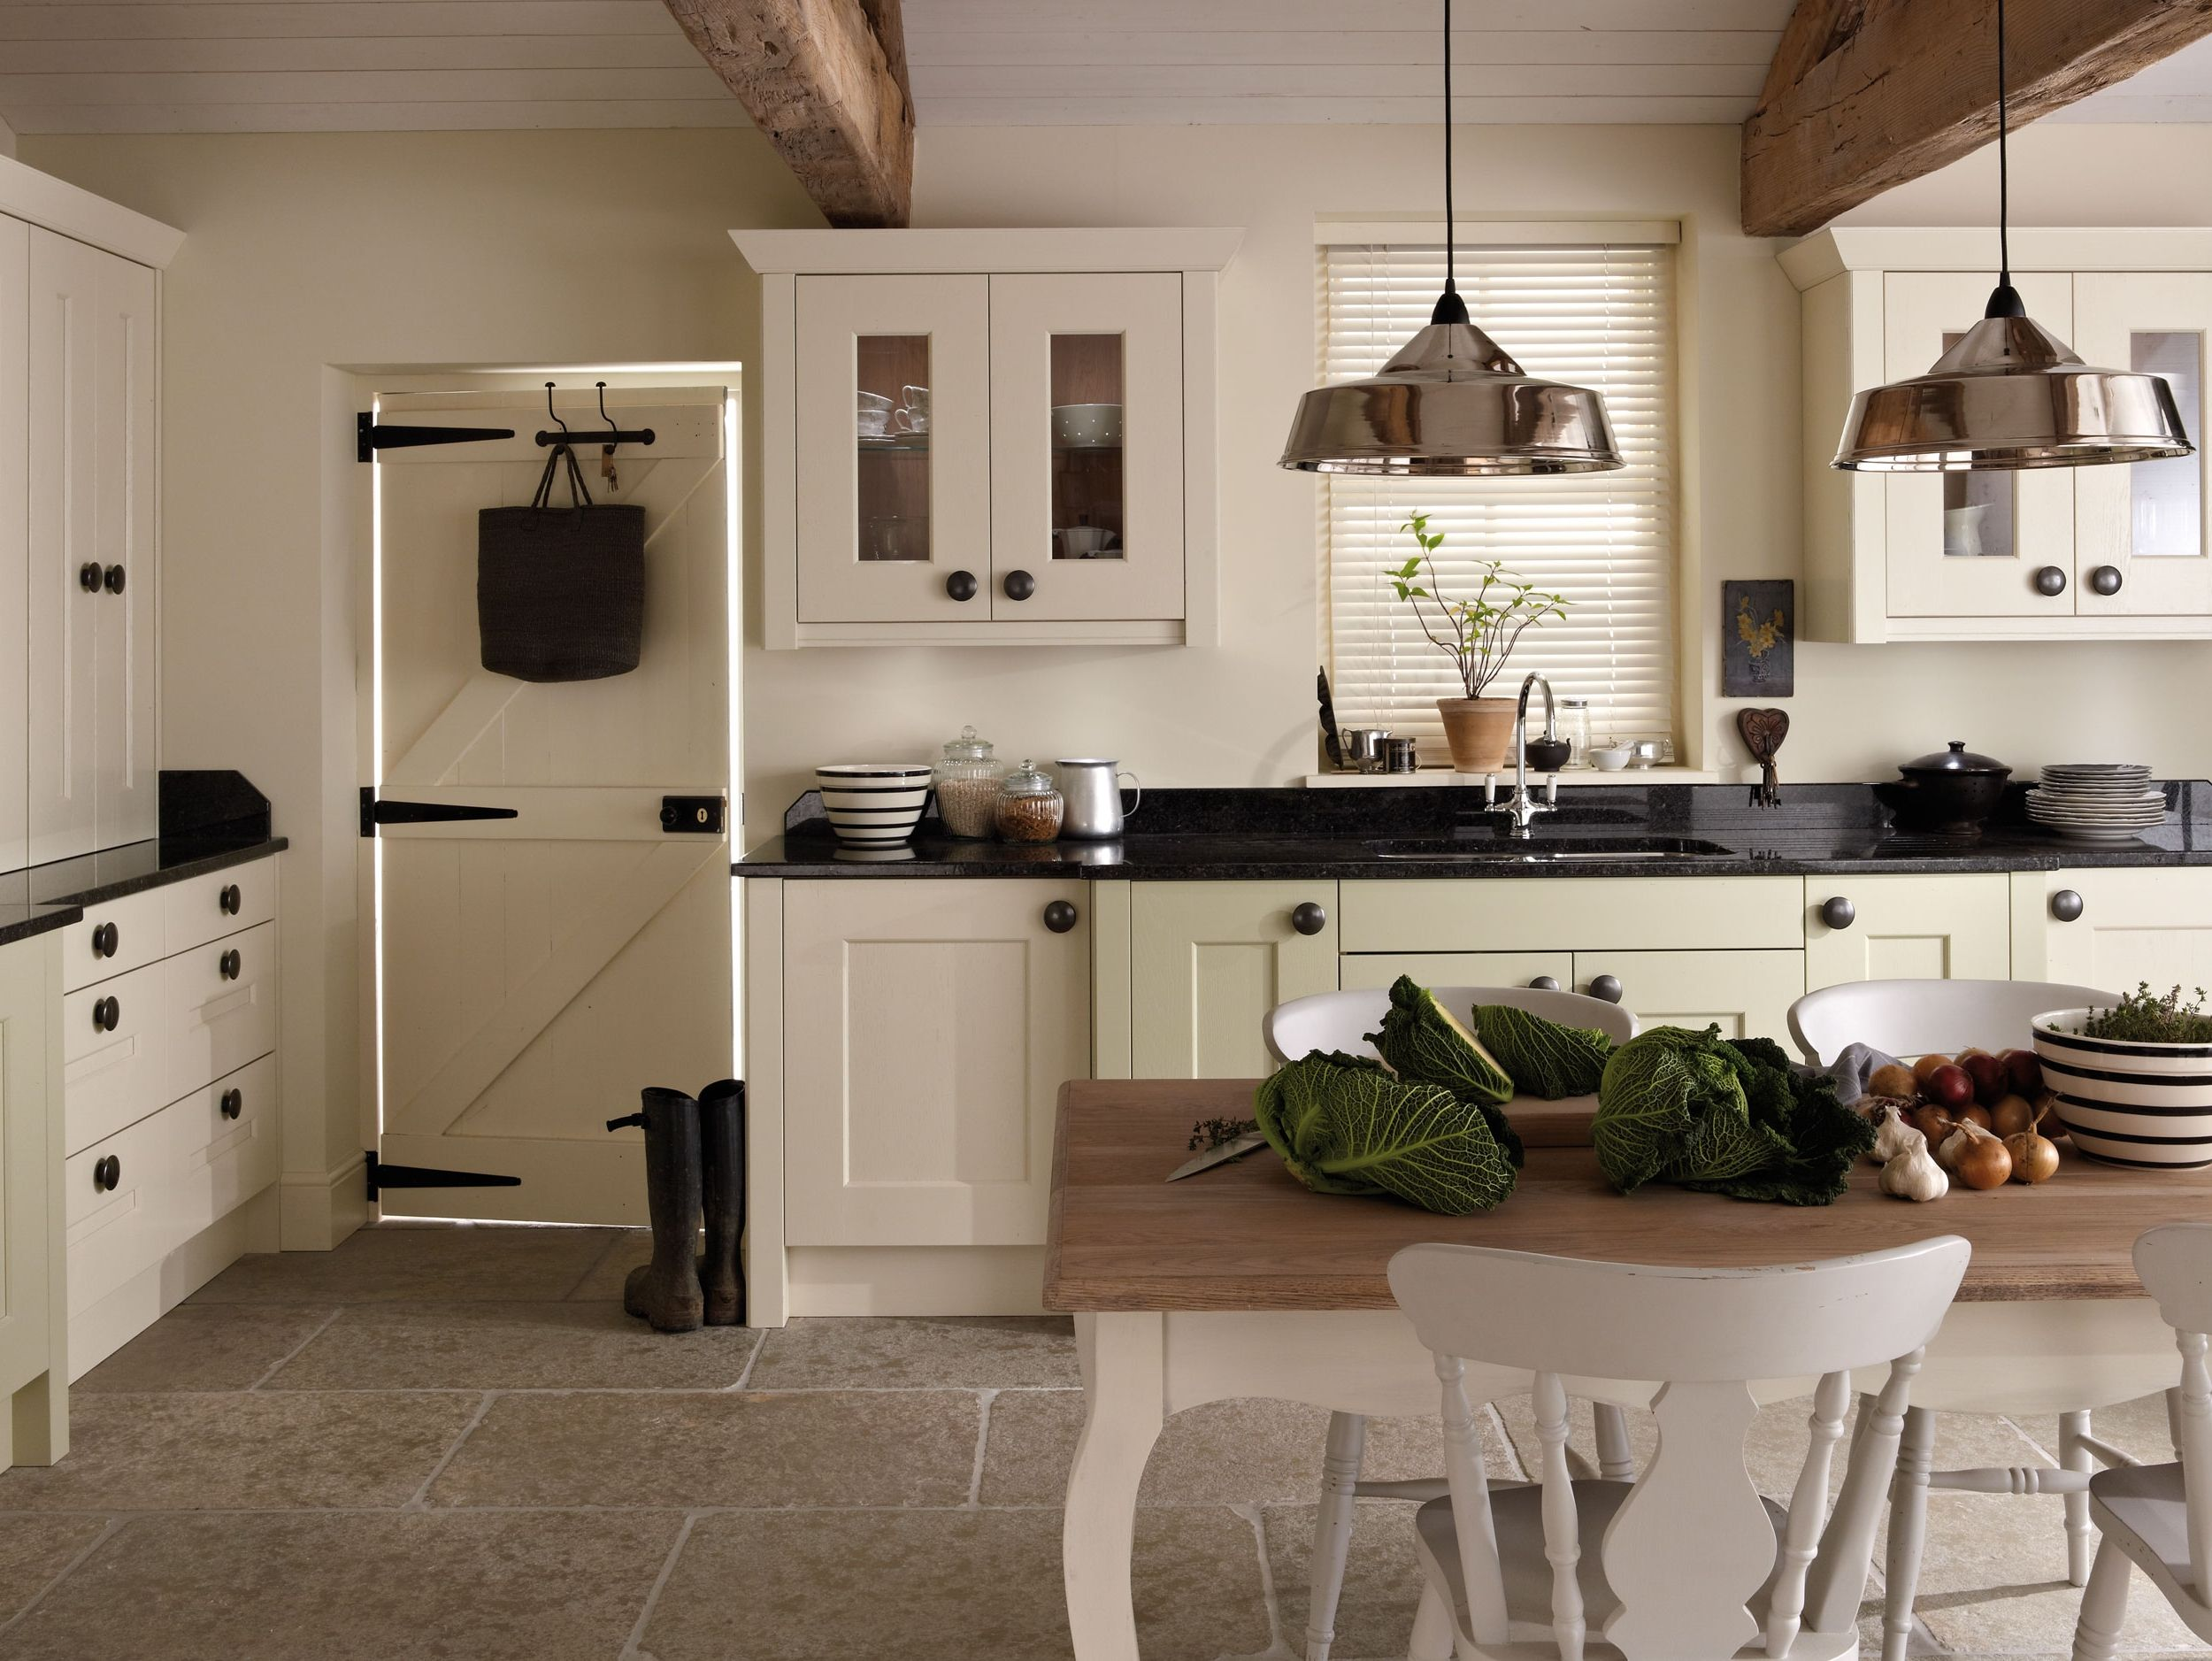 Country Kitchen Design  Google Search  Kitchen Inspiration Unique Moben Kitchen Designs Decorating Design